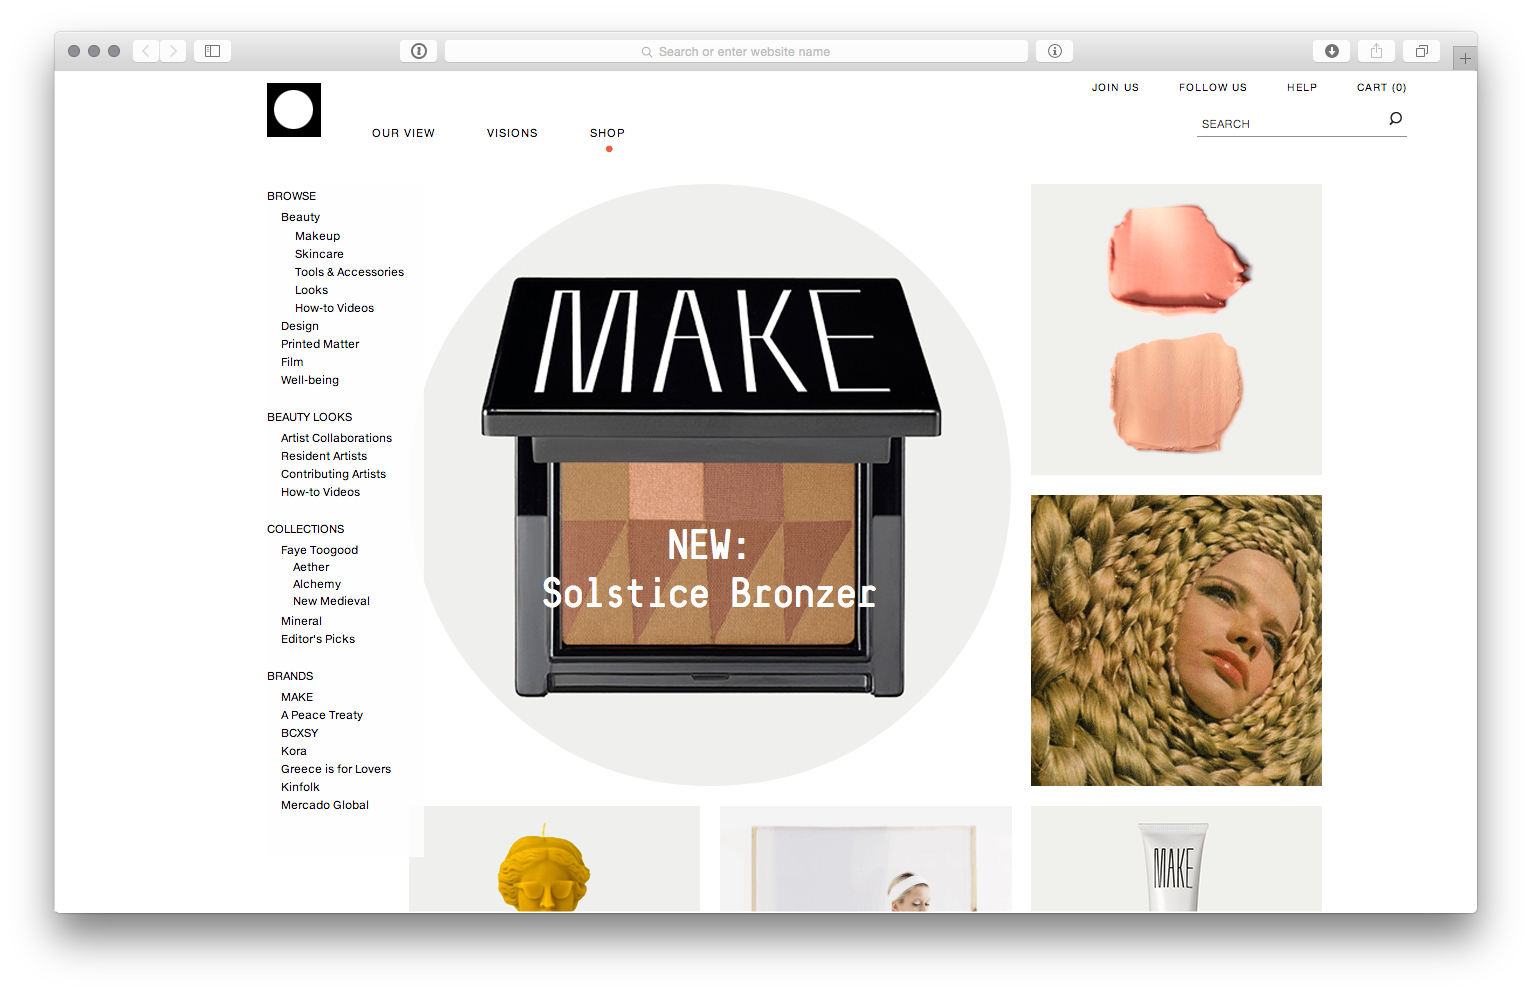 We See Beauty - website templates and digital direction, for We See Beauty with Ariana Mouyiaris